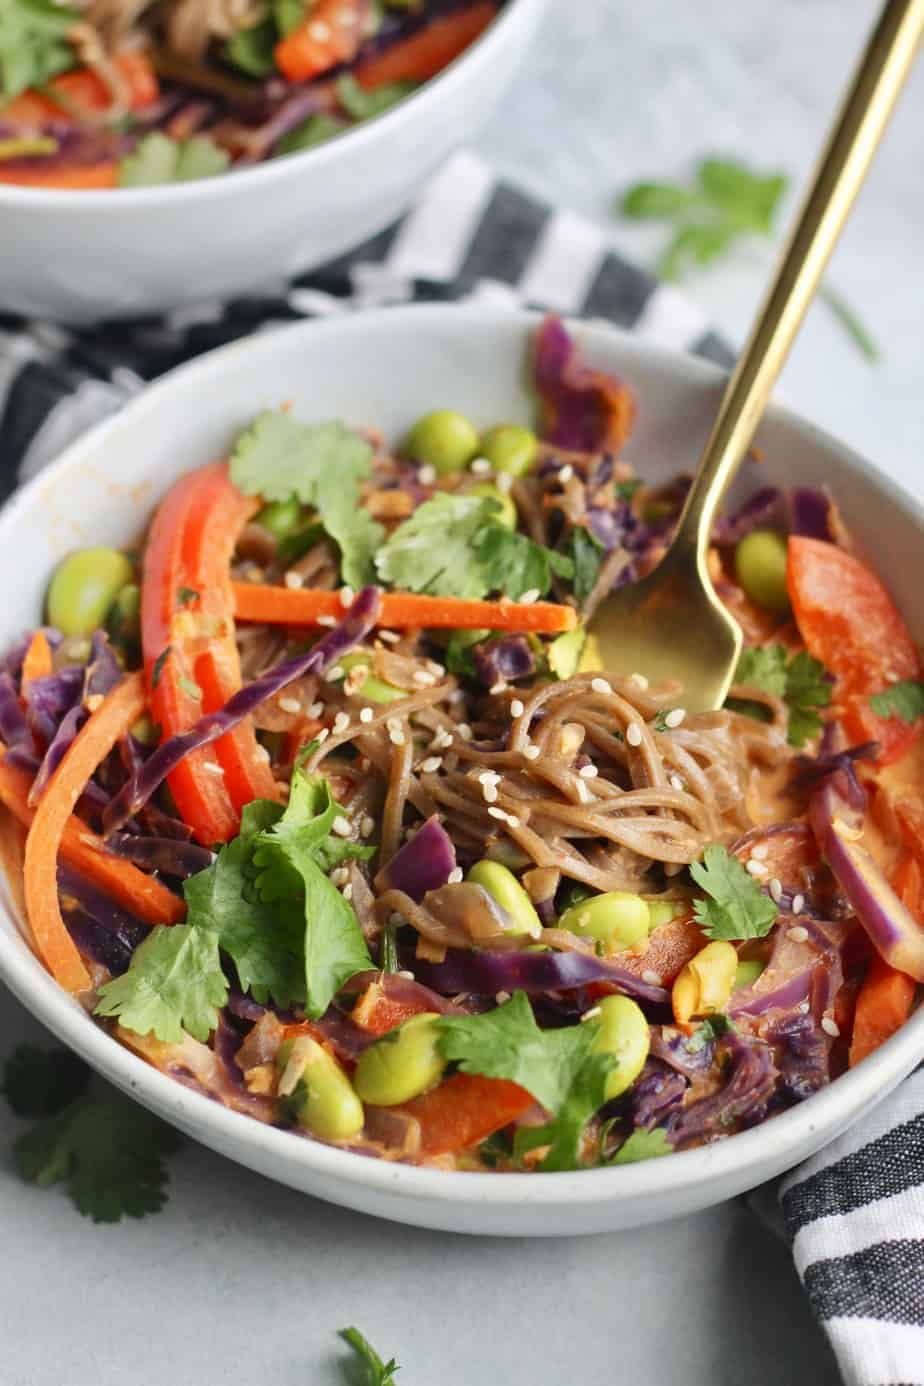 Loaded with bright veggies and buckwheat soba noodles in a creamy curry sauce, these Thai Curry Soba Noodle Bowls are a colorful, healthy meal. Makes great leftovers!